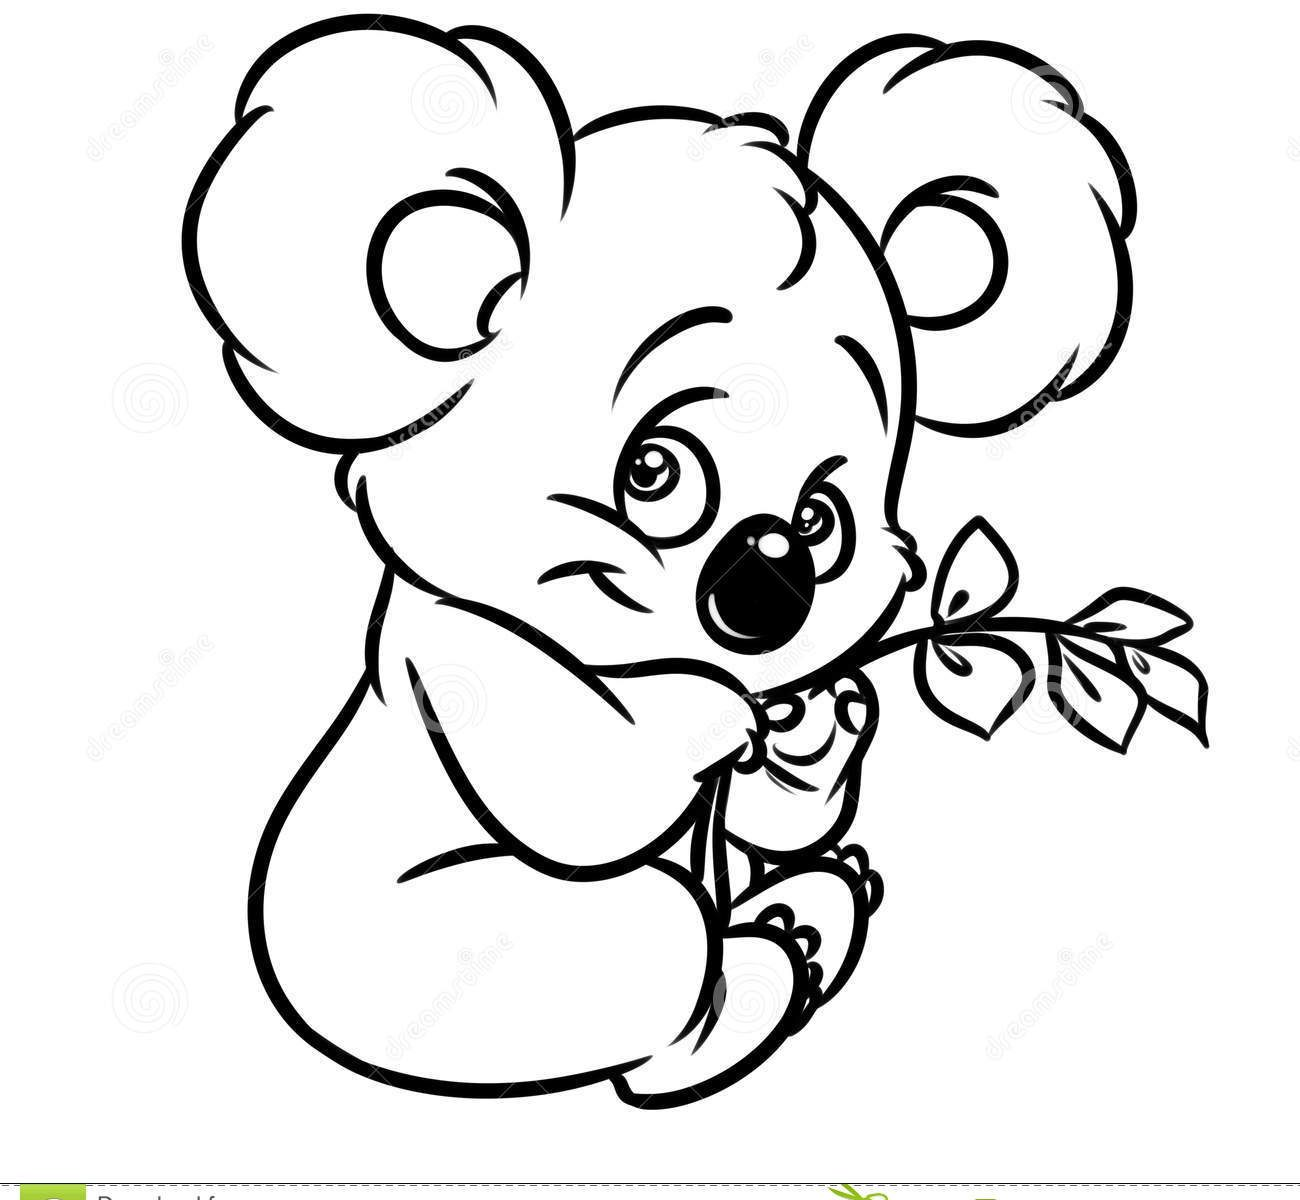 koala pictures to colour in koala line drawing at getdrawings free download colour to pictures koala in